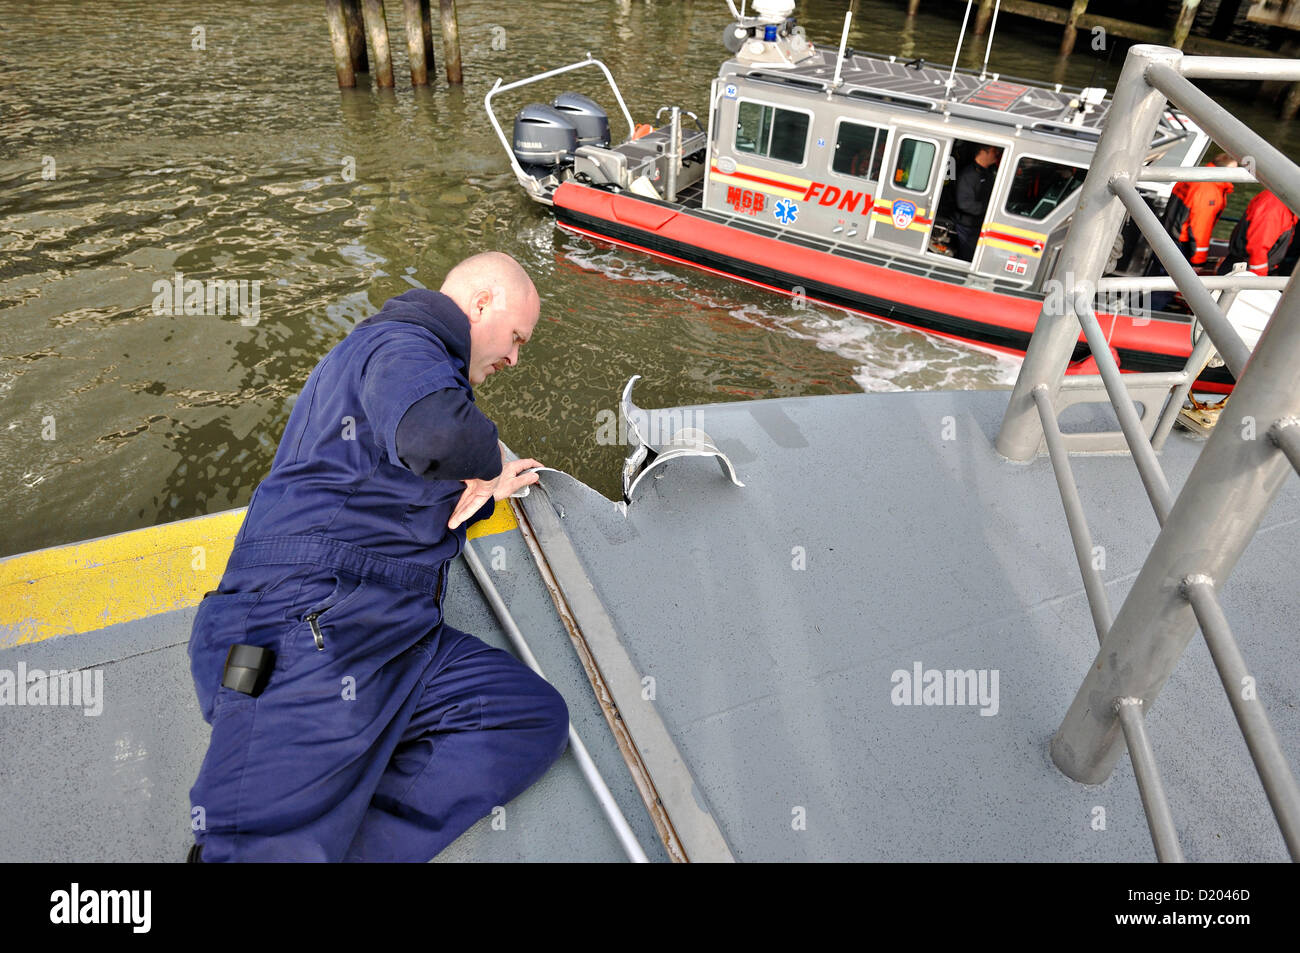 New York, USA. 9th January 2013. US Coast Guard Maritime inspectors examine the Seastreak Ferry after it slammed - Stock Image